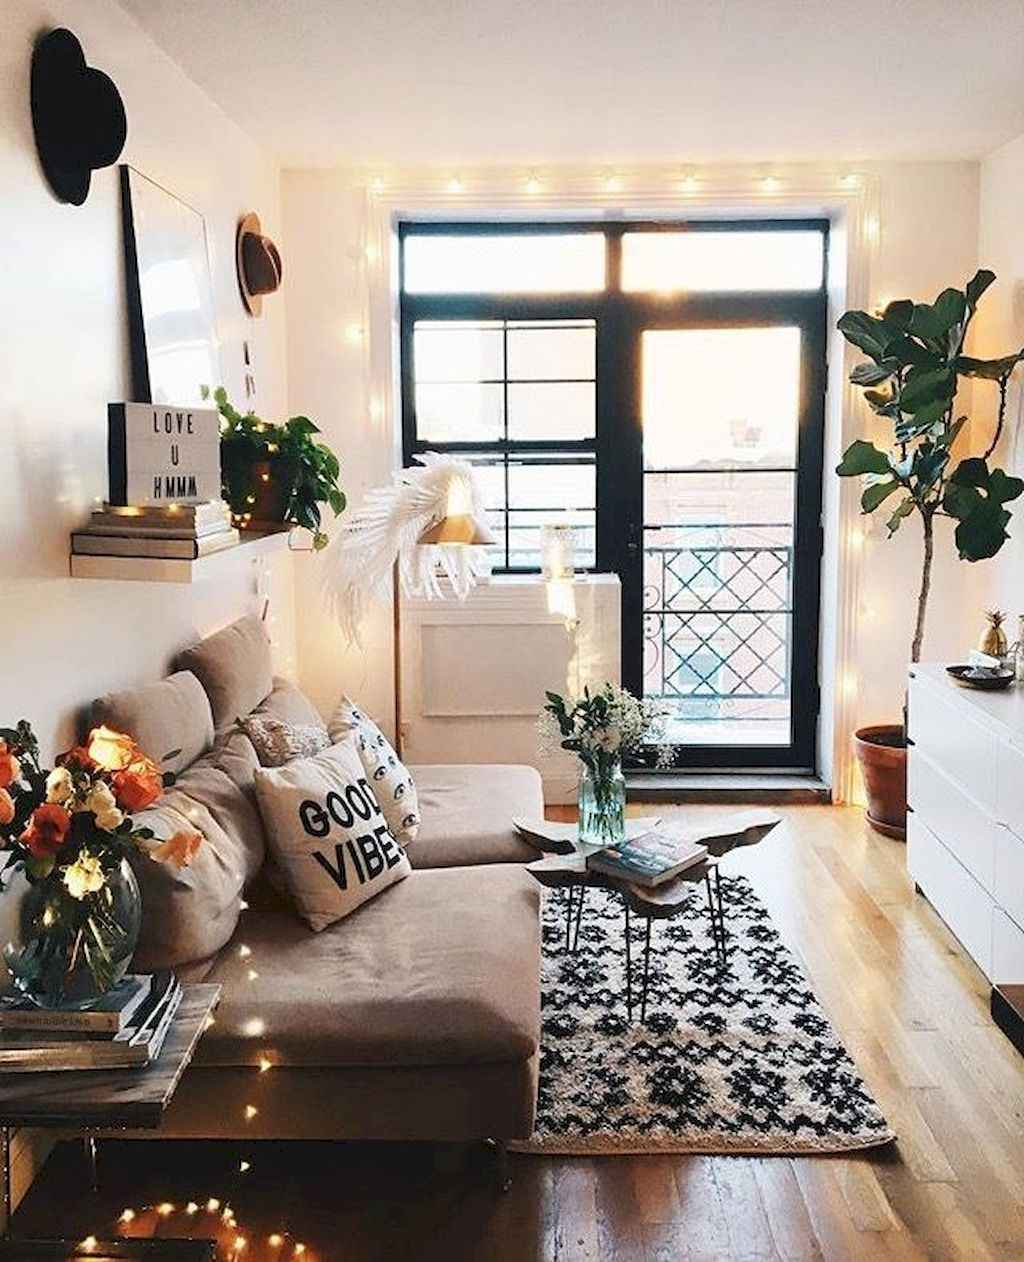 Cozy apartment decorating ideas on a budget (78)